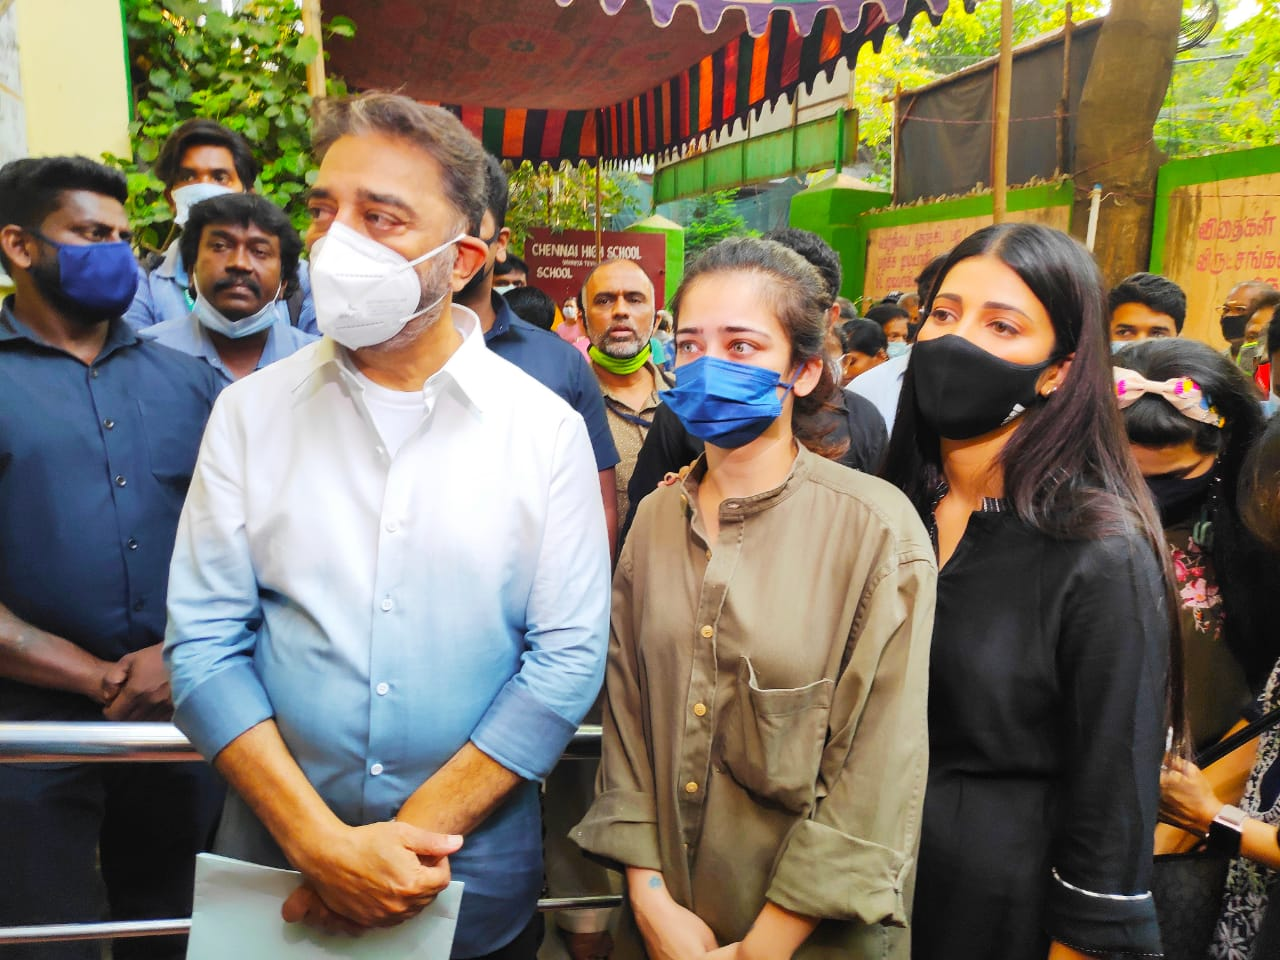 Actor Kamal Haasan came with family and voted